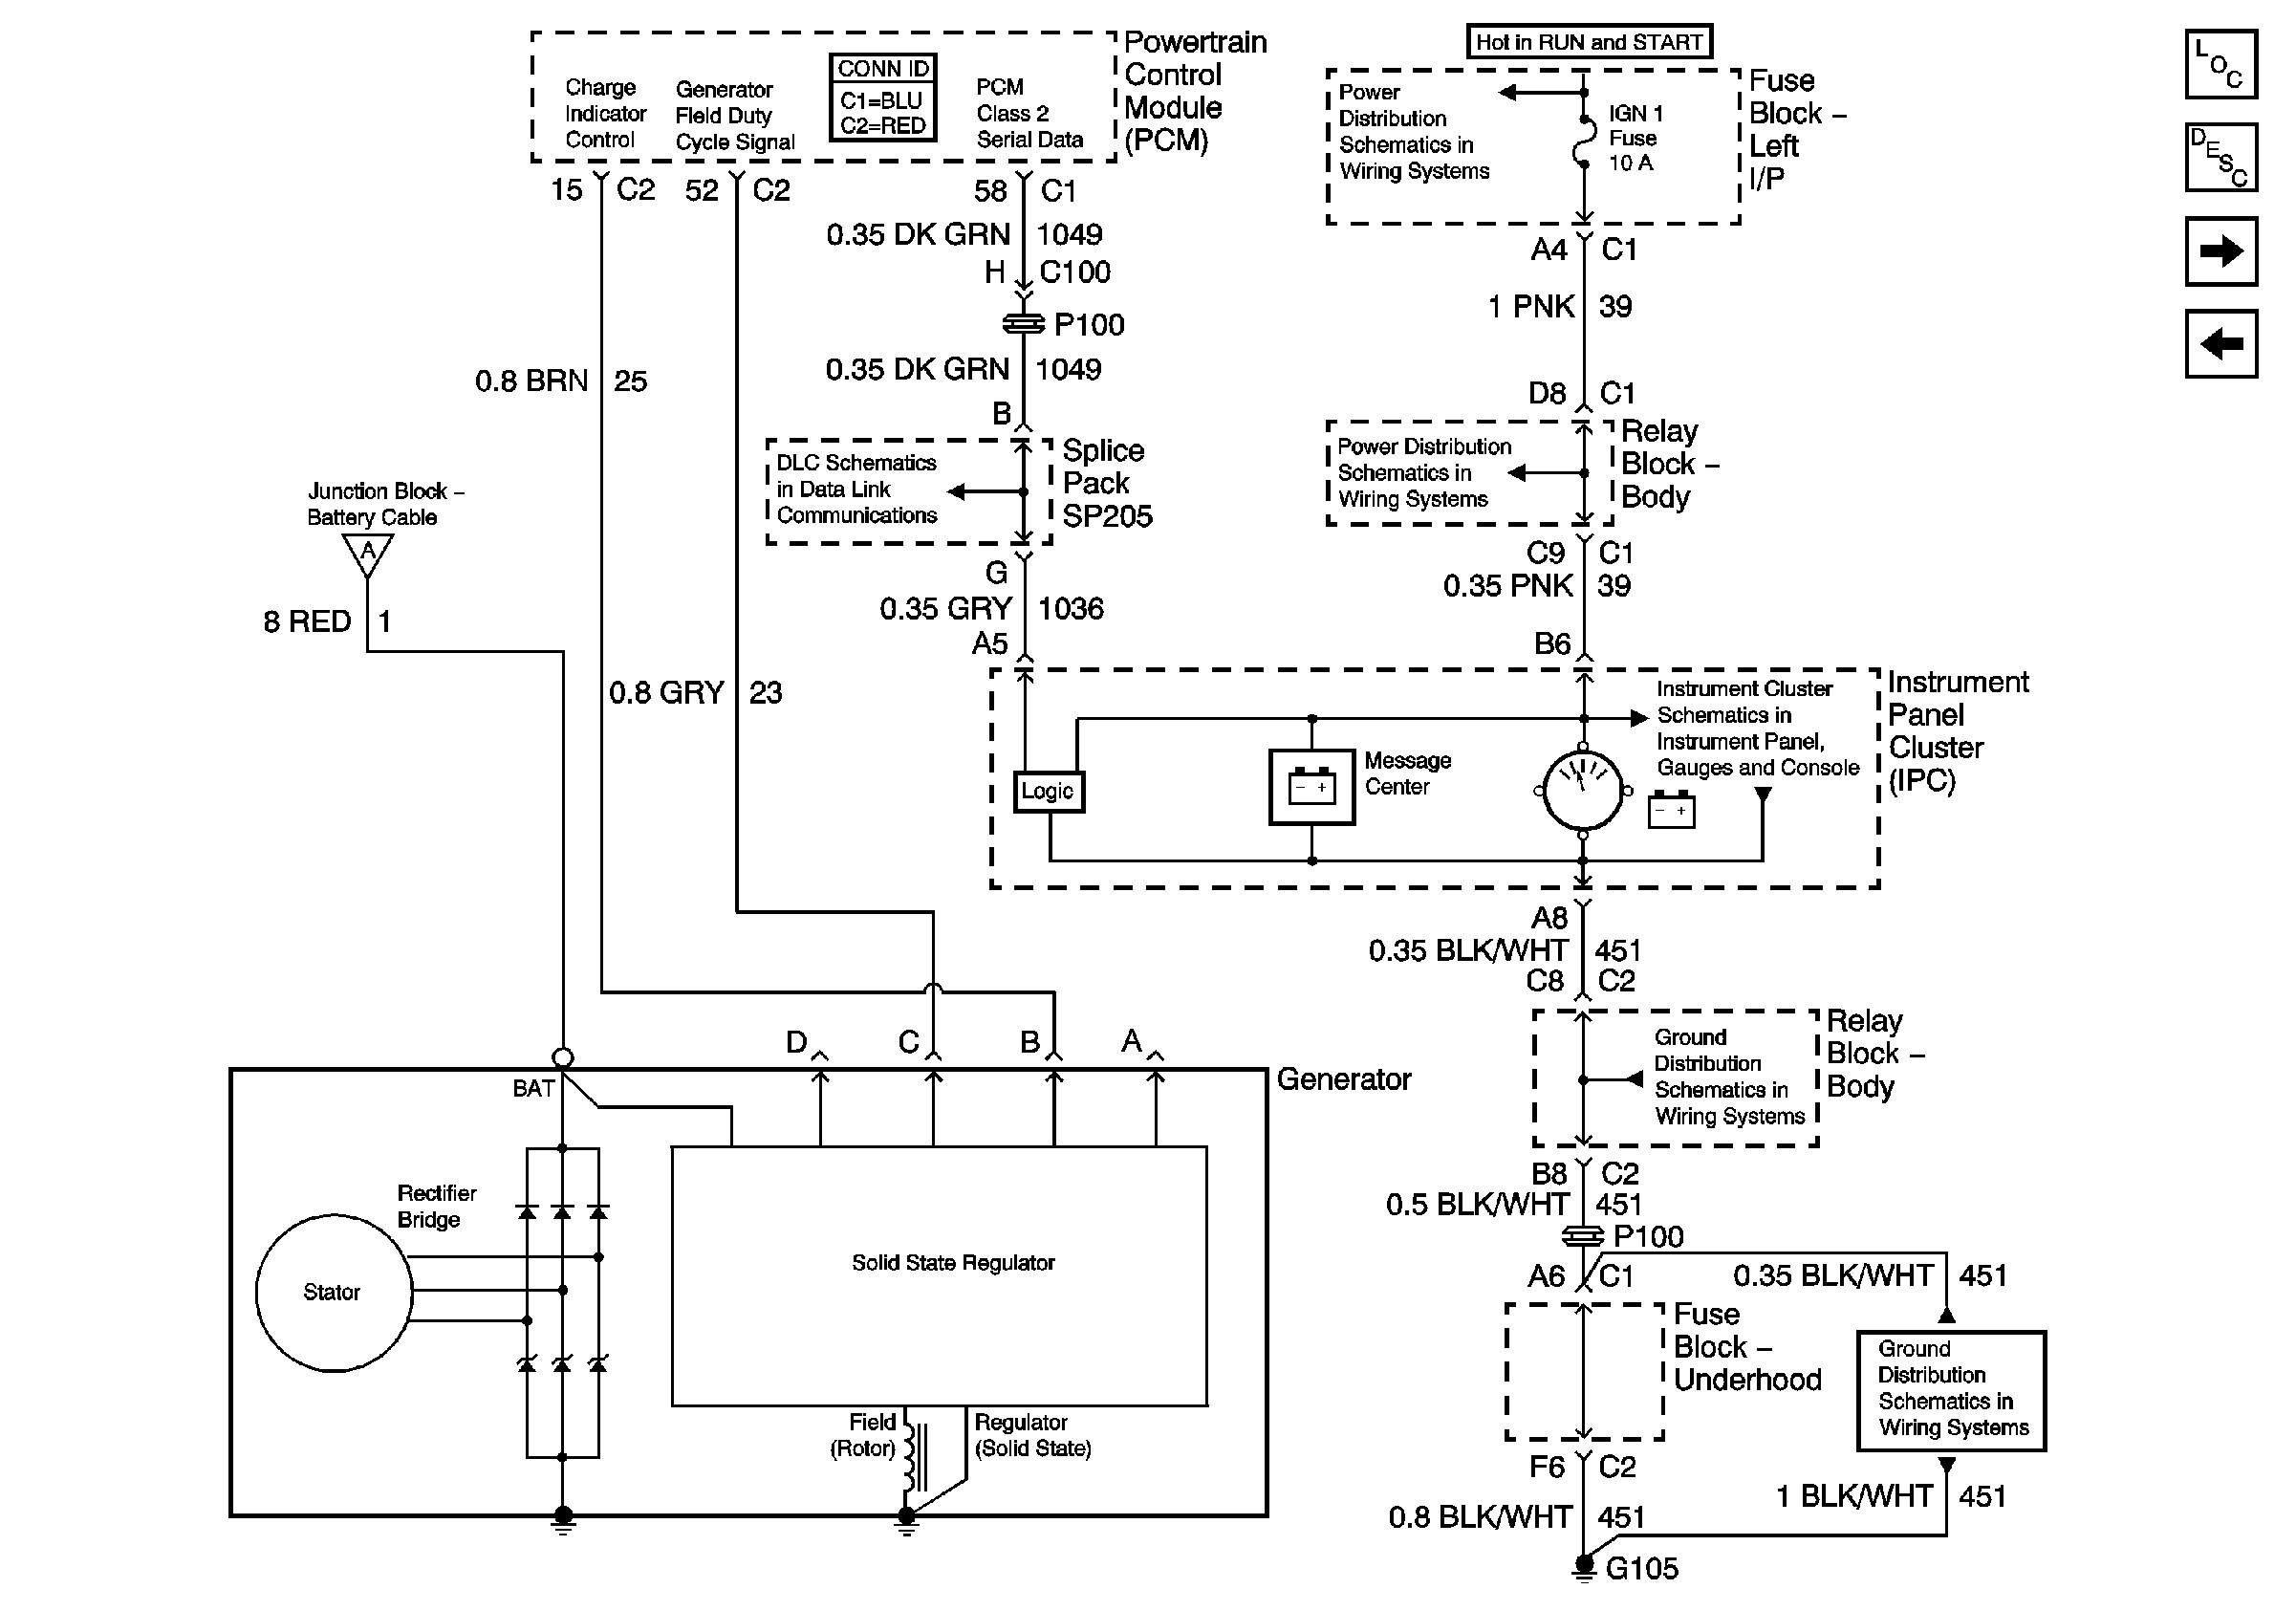 2008 Chevy Trailblazer Instrument Cluster Wiring Diagram - Wiring Diagrams  Blogpalox-france.fr